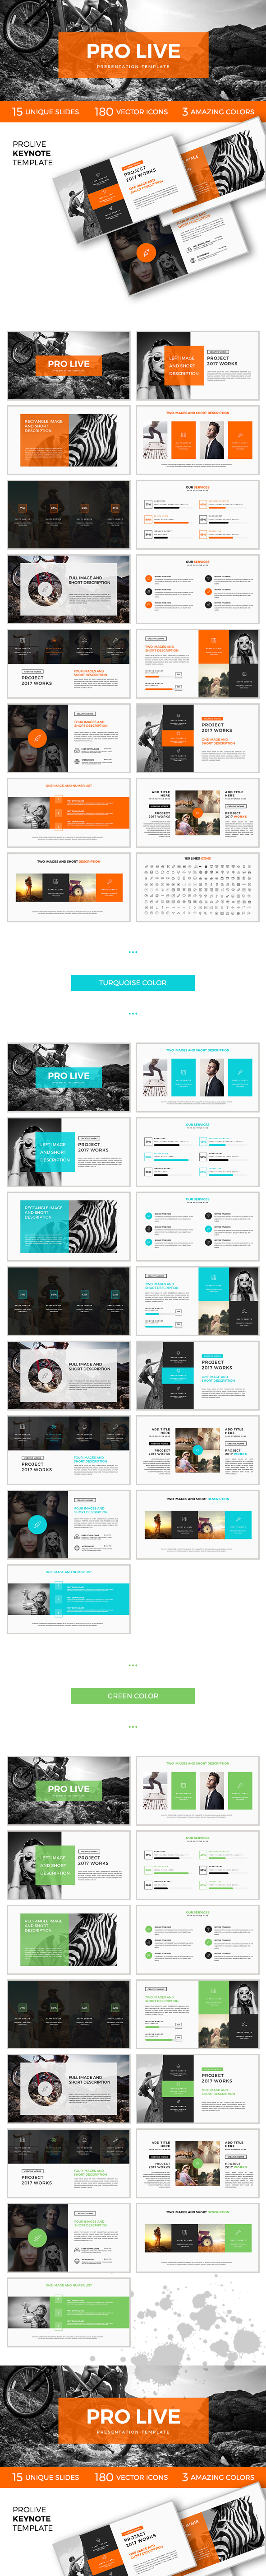 GraphicRiver Pro Live Keynote Template 20405244